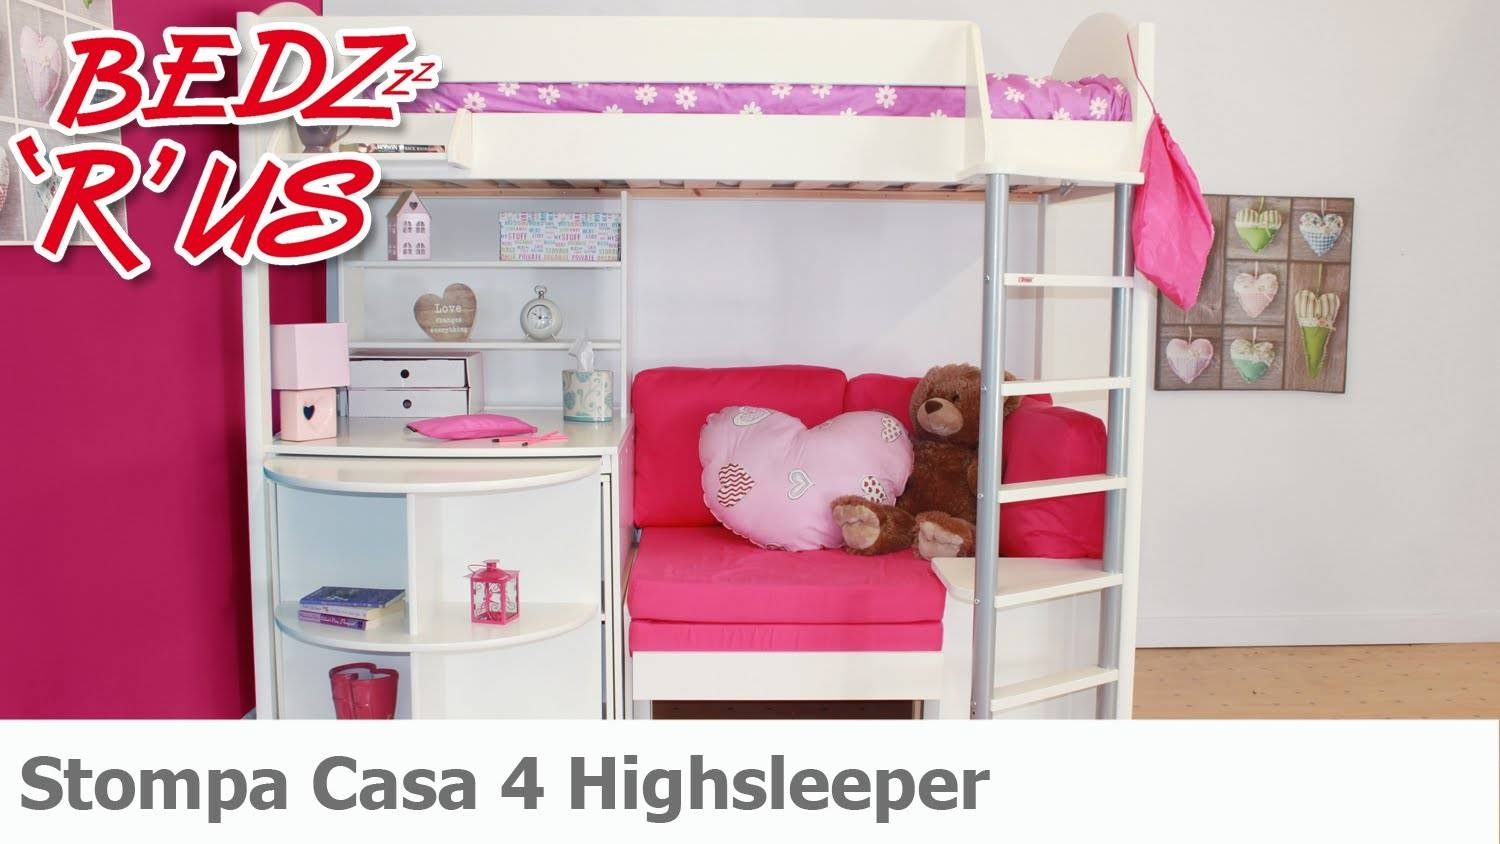 Stompa Casa 4 Highsleeper Bed - Bedzrus - Youtube with regard to High Sleeper Bed With Sofa (Image 20 of 30)